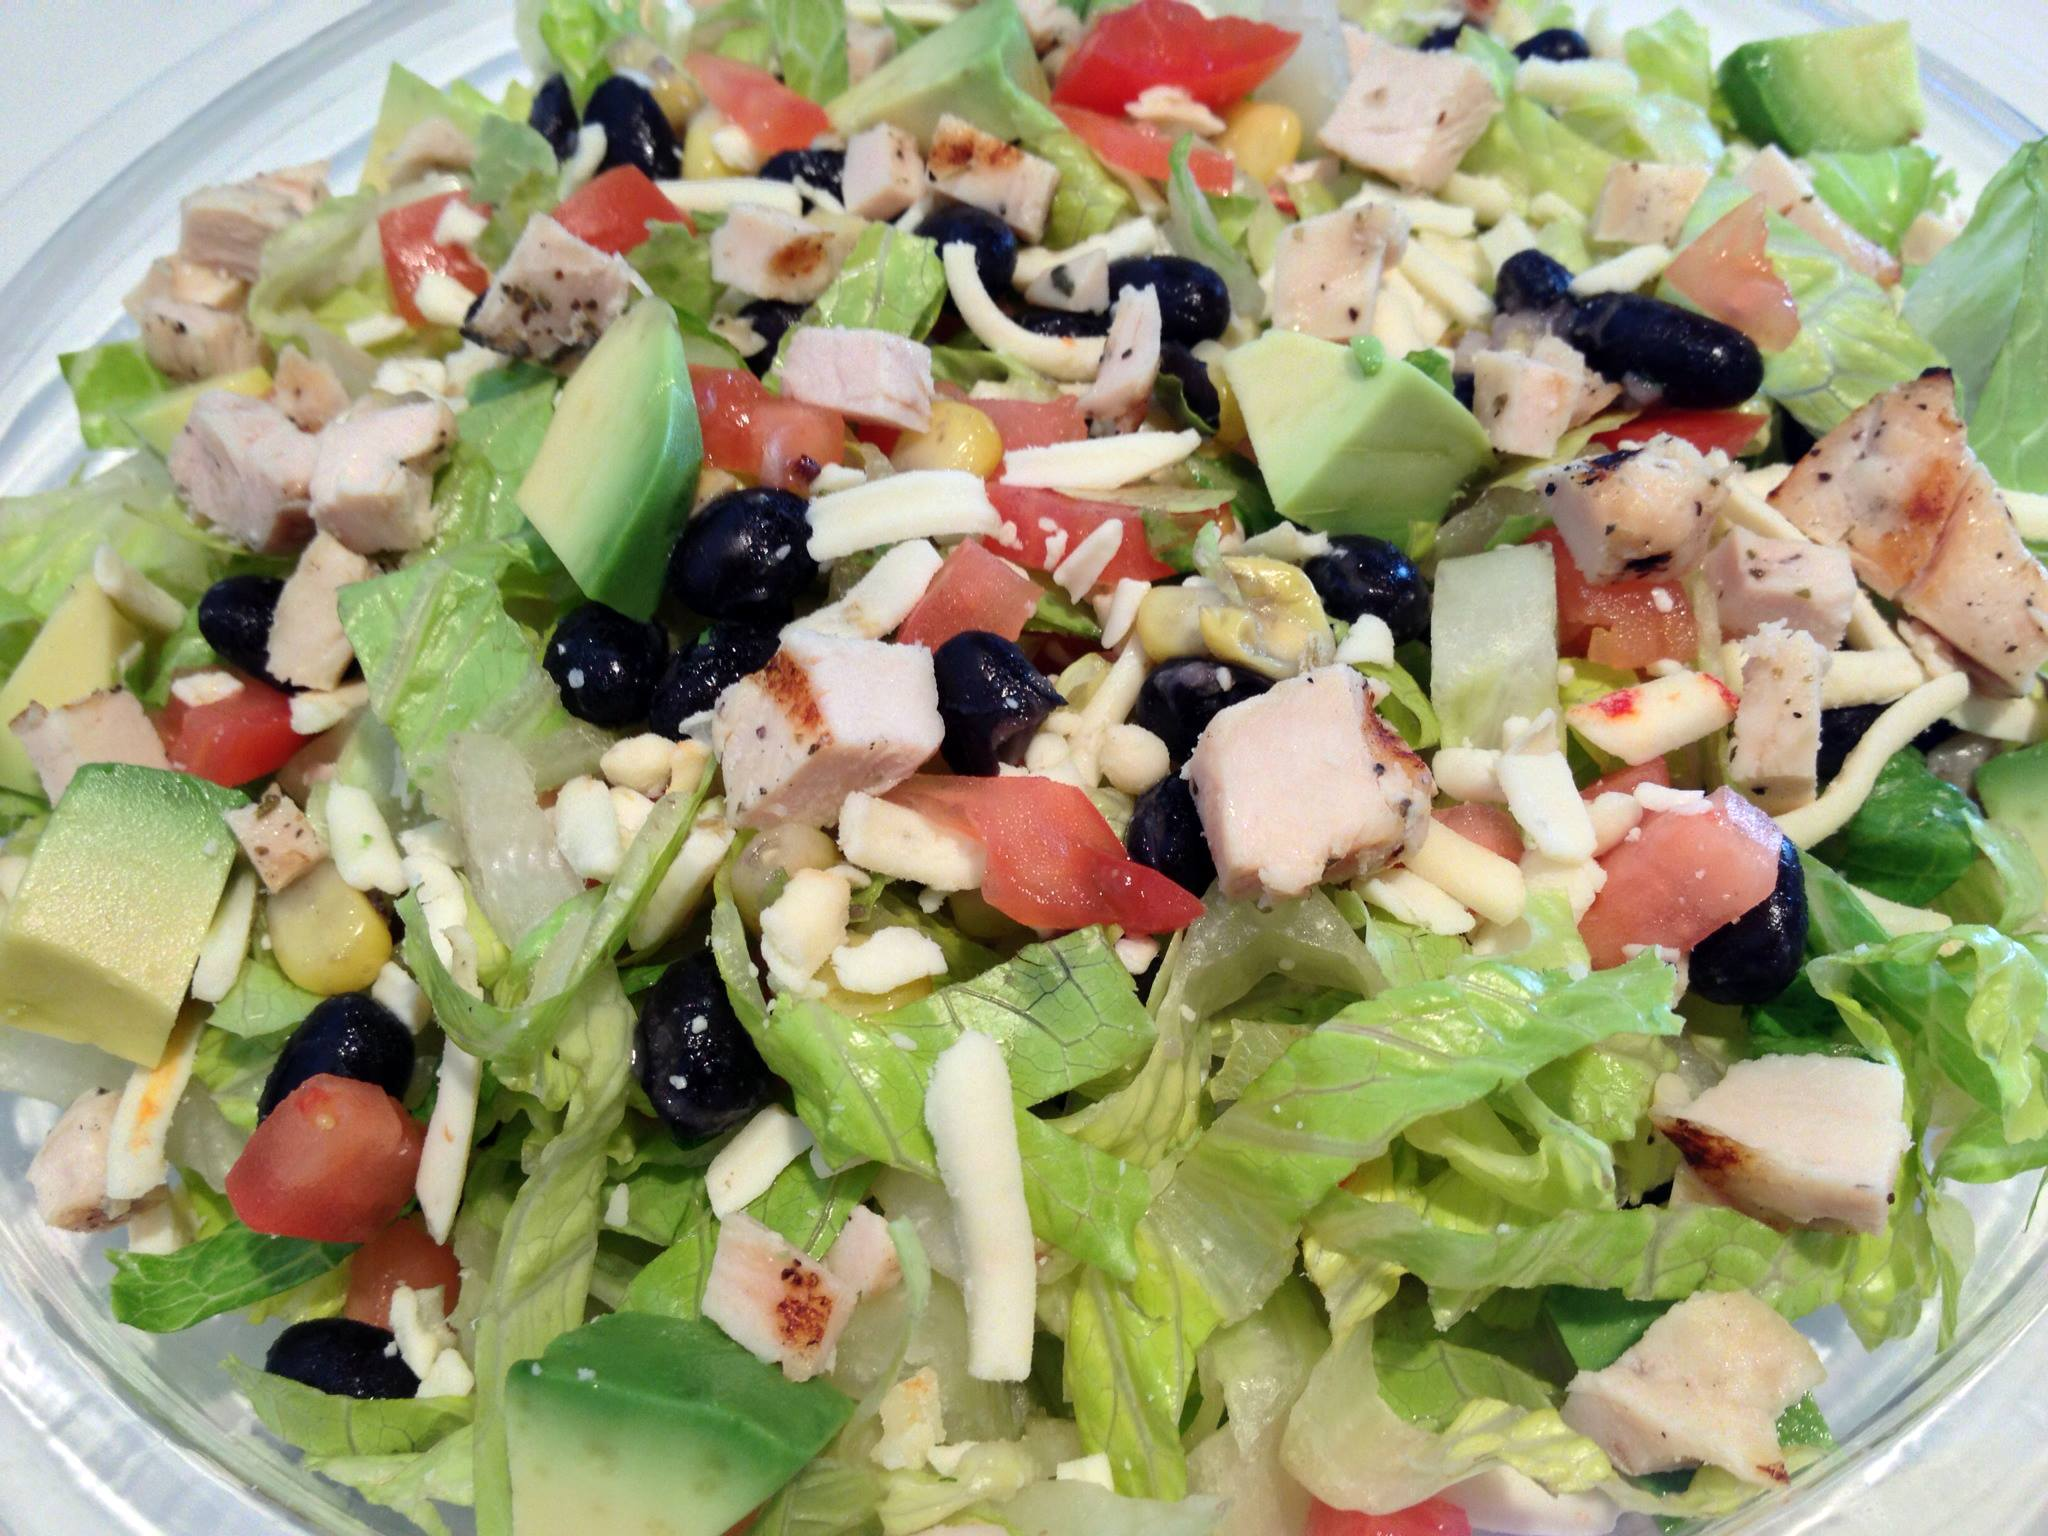 Salad with vegetables, meat, and cheese